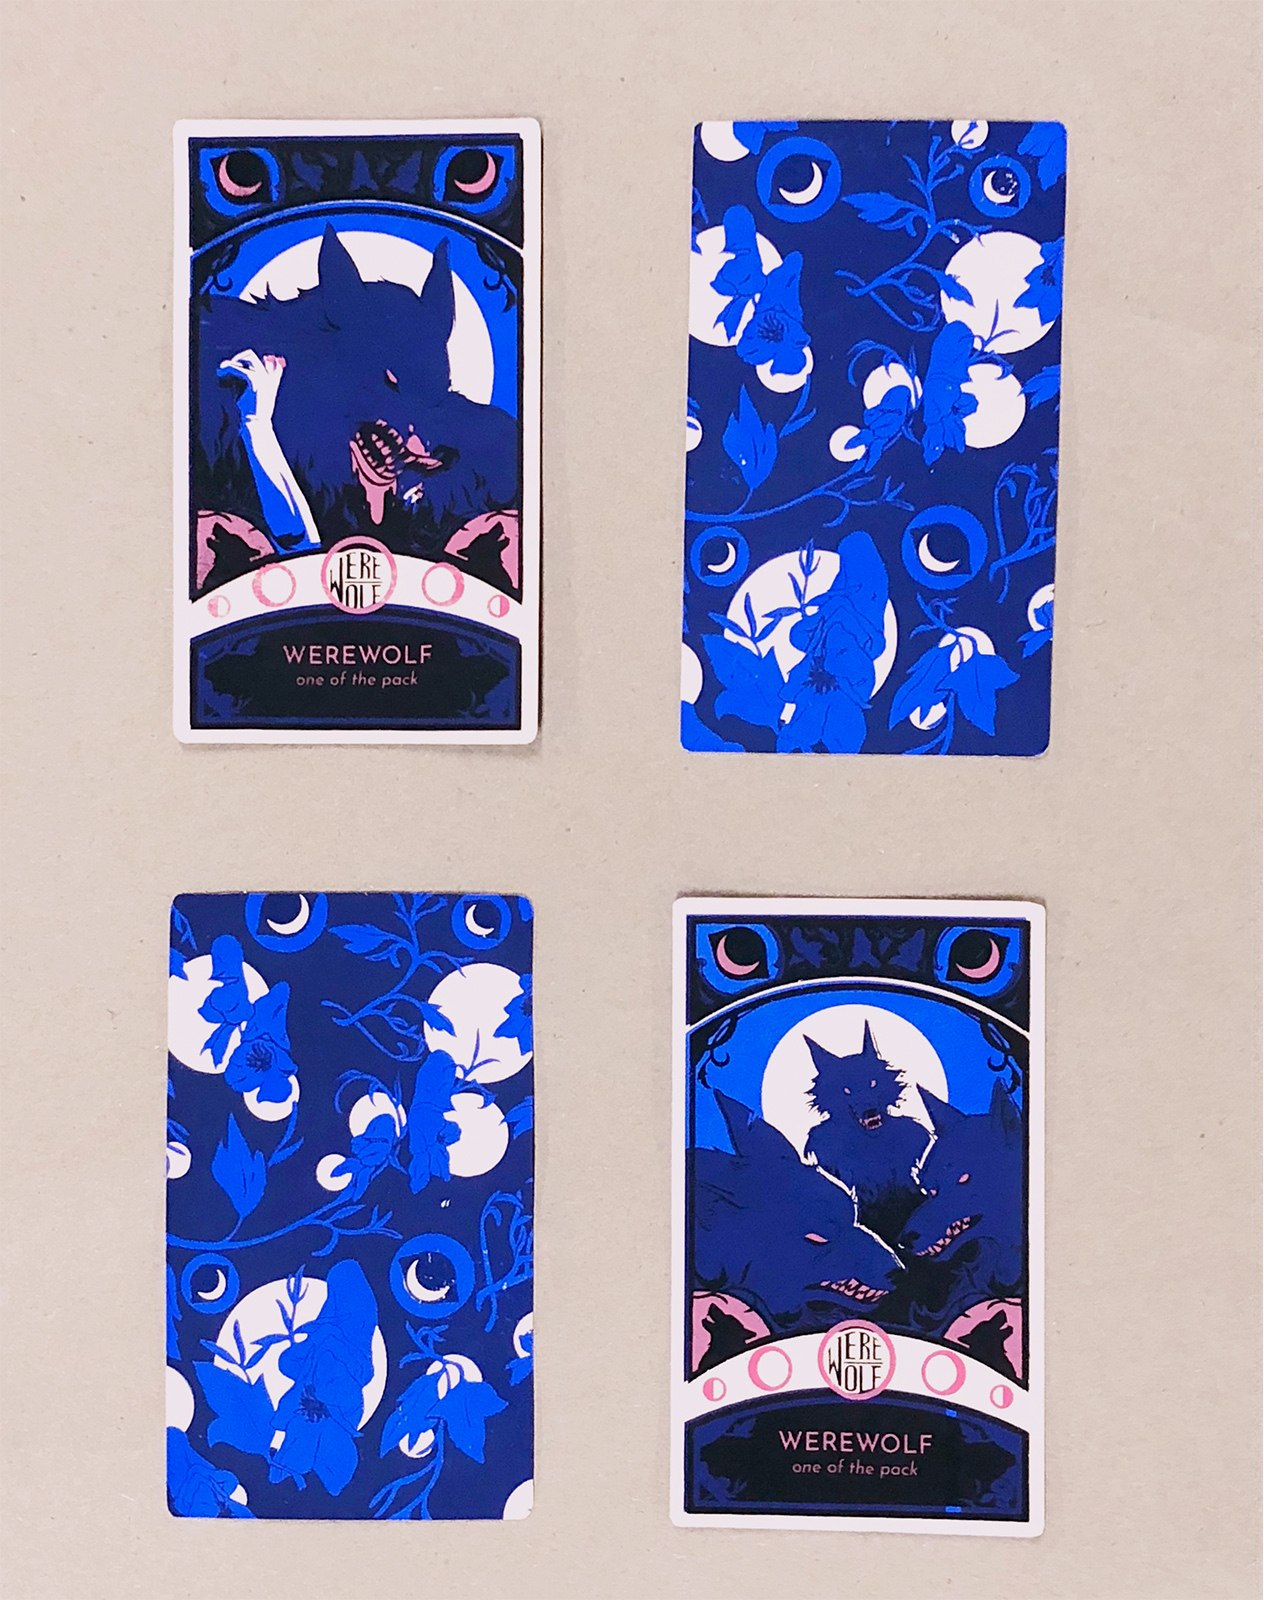 Screenprinted werewolf playing cards. Both cards are for the Werewolf role in the game. The front of the card is printed in four layers (mid-value blue, dark blue, black, and pink over pale orange paper, the back is just mid-value blue and midnight blue. The front shows the role, an illustration of a werewolf and wolfsbane framing elements. The back is a repeat pattern of eyes, moons and wolfsbane.